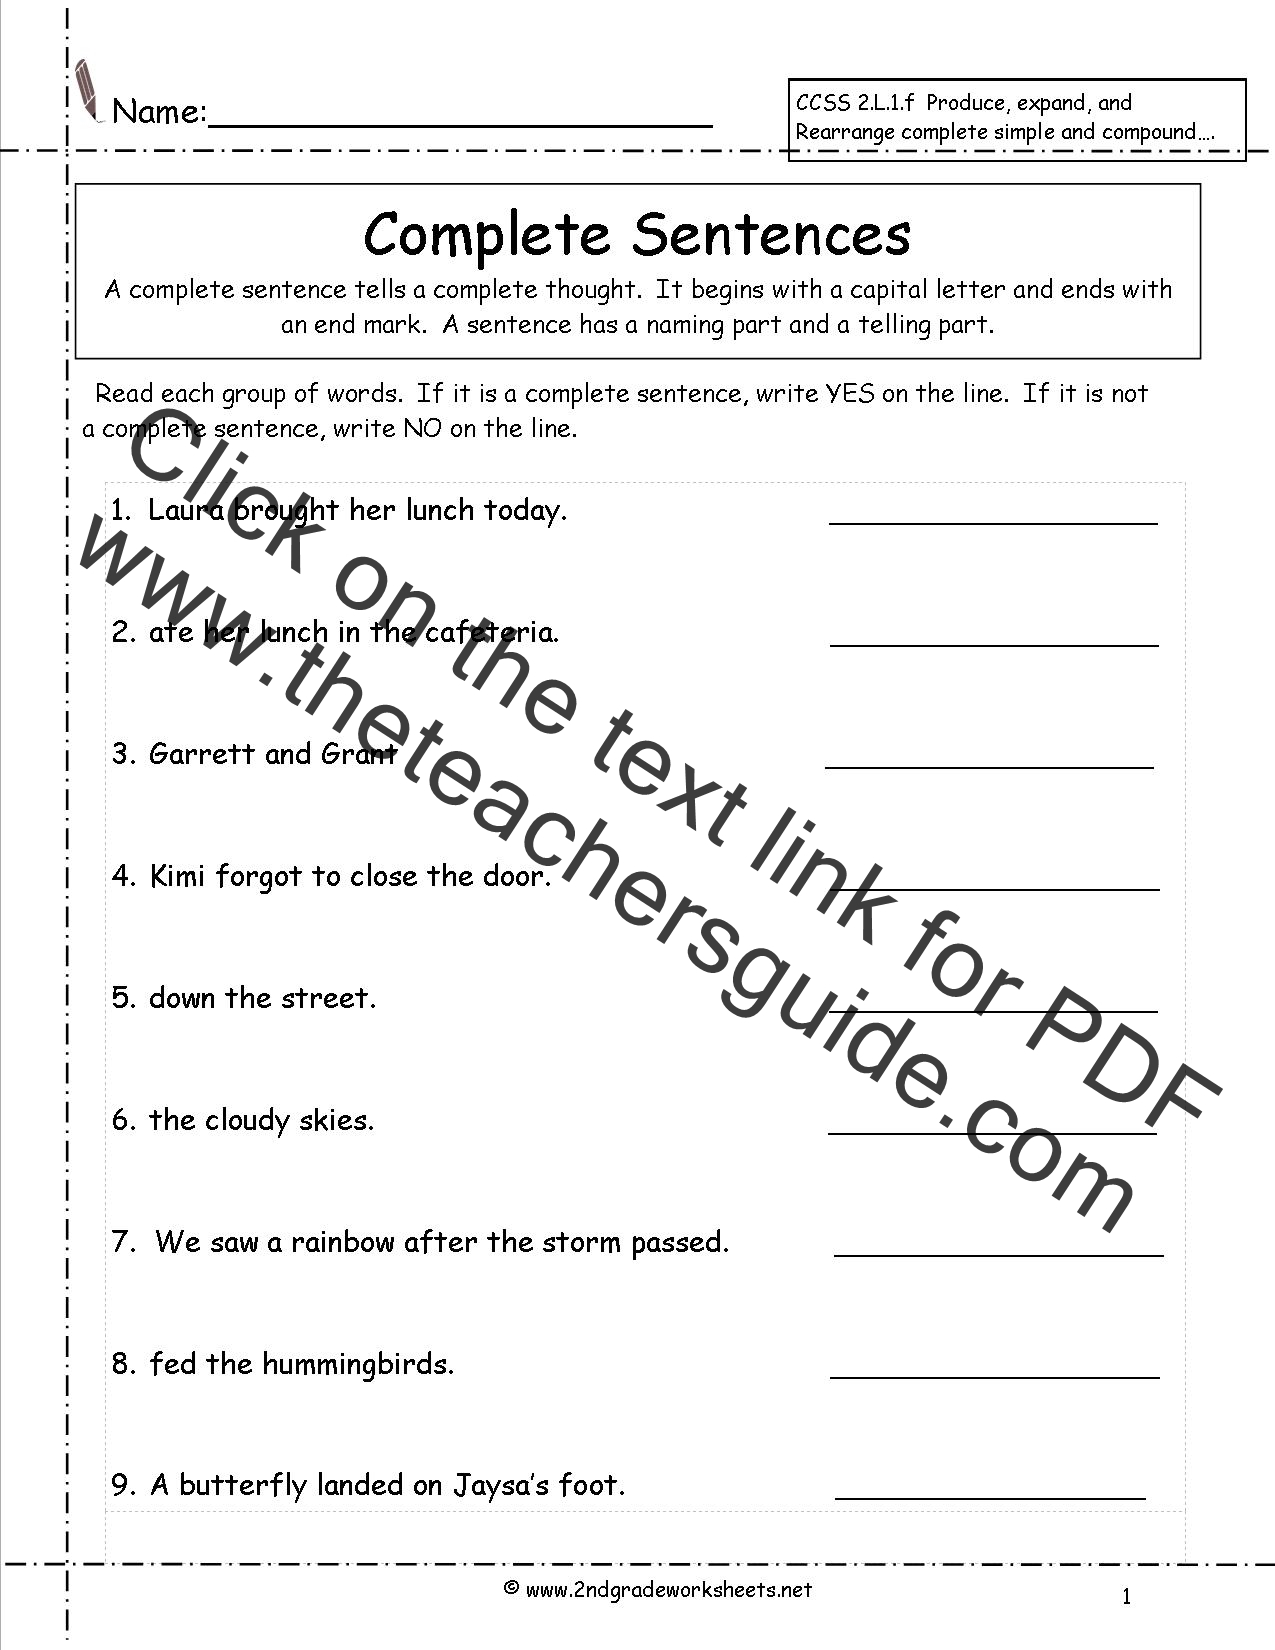 Worksheets Number Sentence Worksheets 2nd Grade second grade sentences worksheets ccss 2 l 1 f complete worksheets